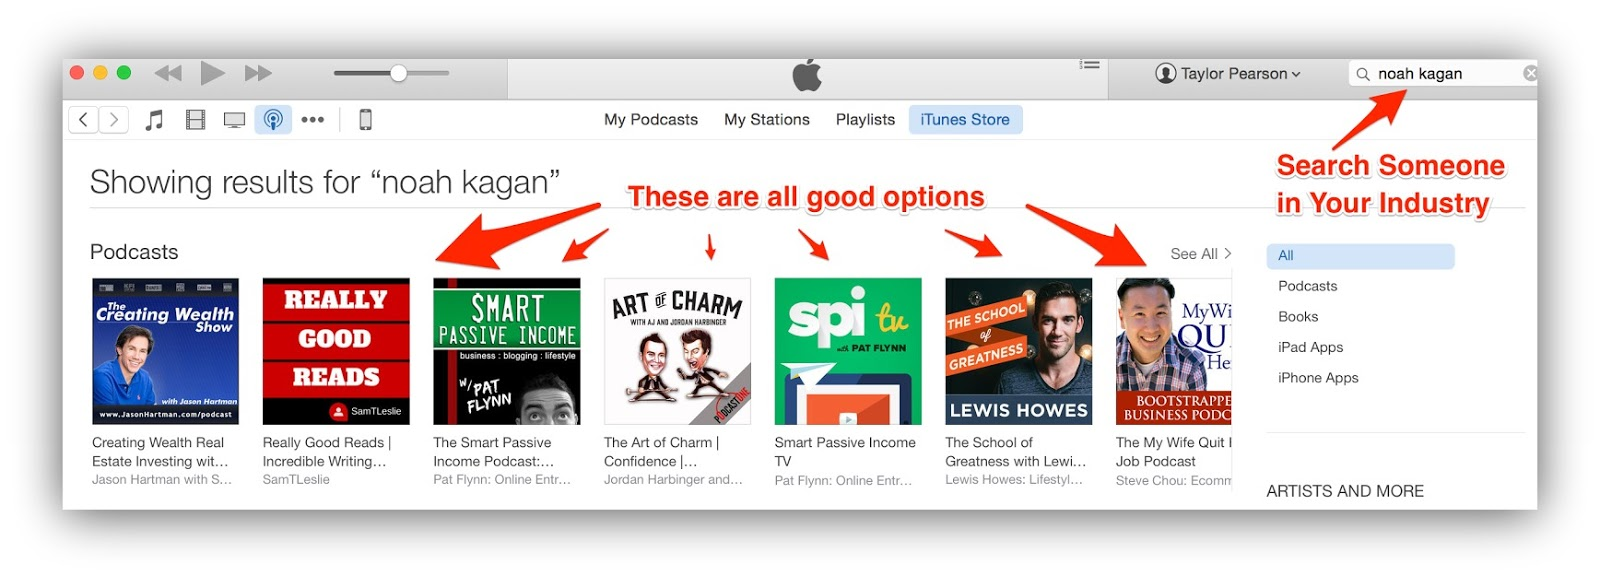 how to download podcasts from itunes